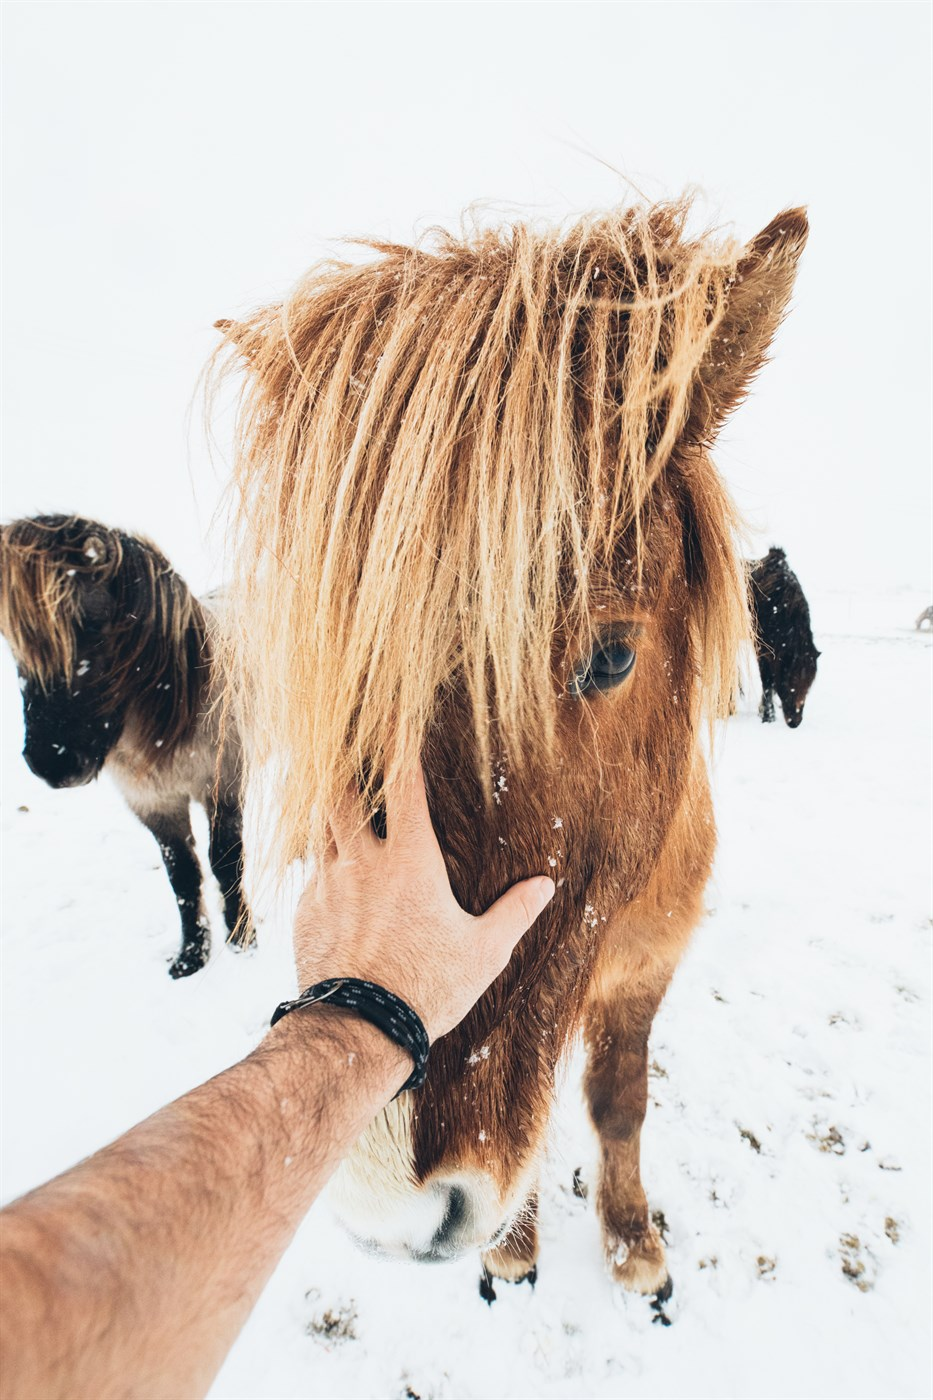 icelandic horses in winter in Iceland